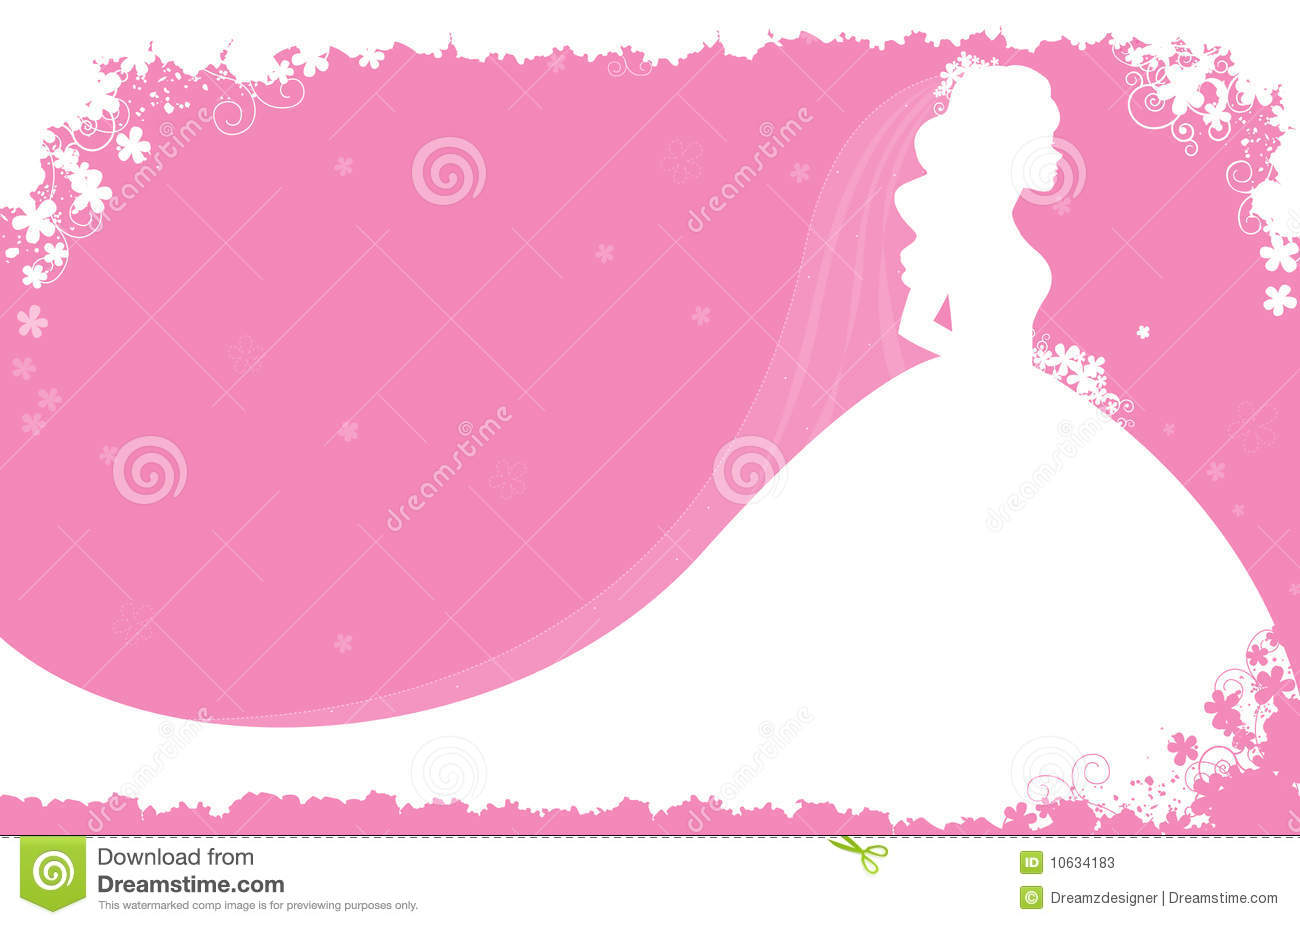 Bridal shower / wedding invitation card background with a beautiful